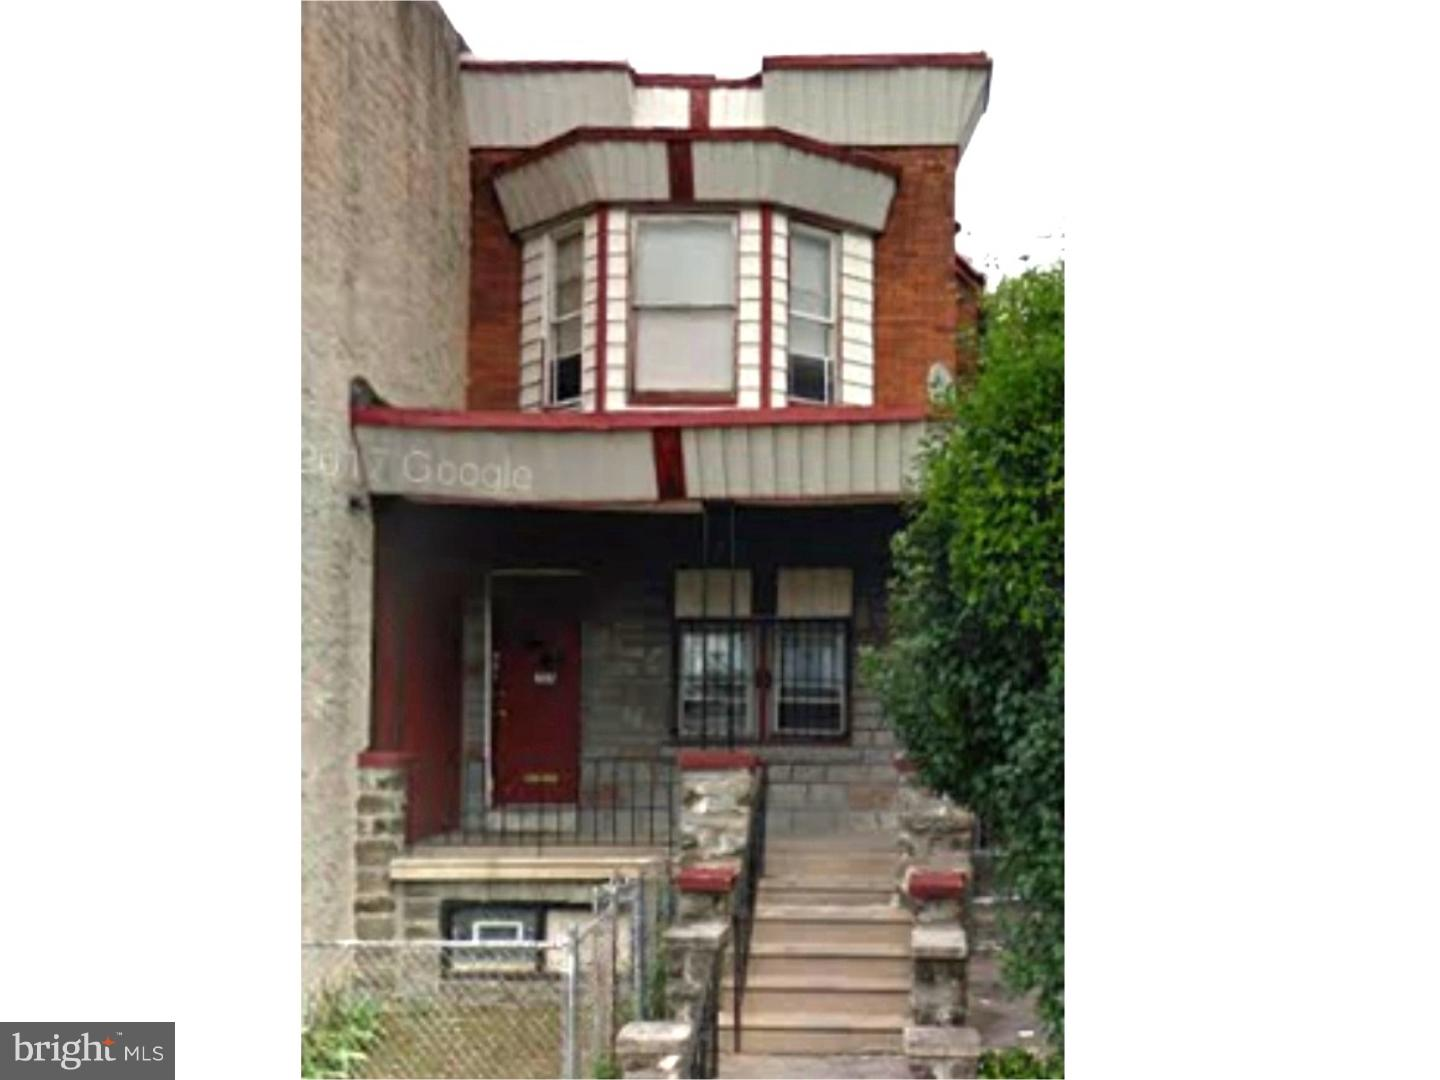 703 S 52ND Street Philadelphia, PA 19143